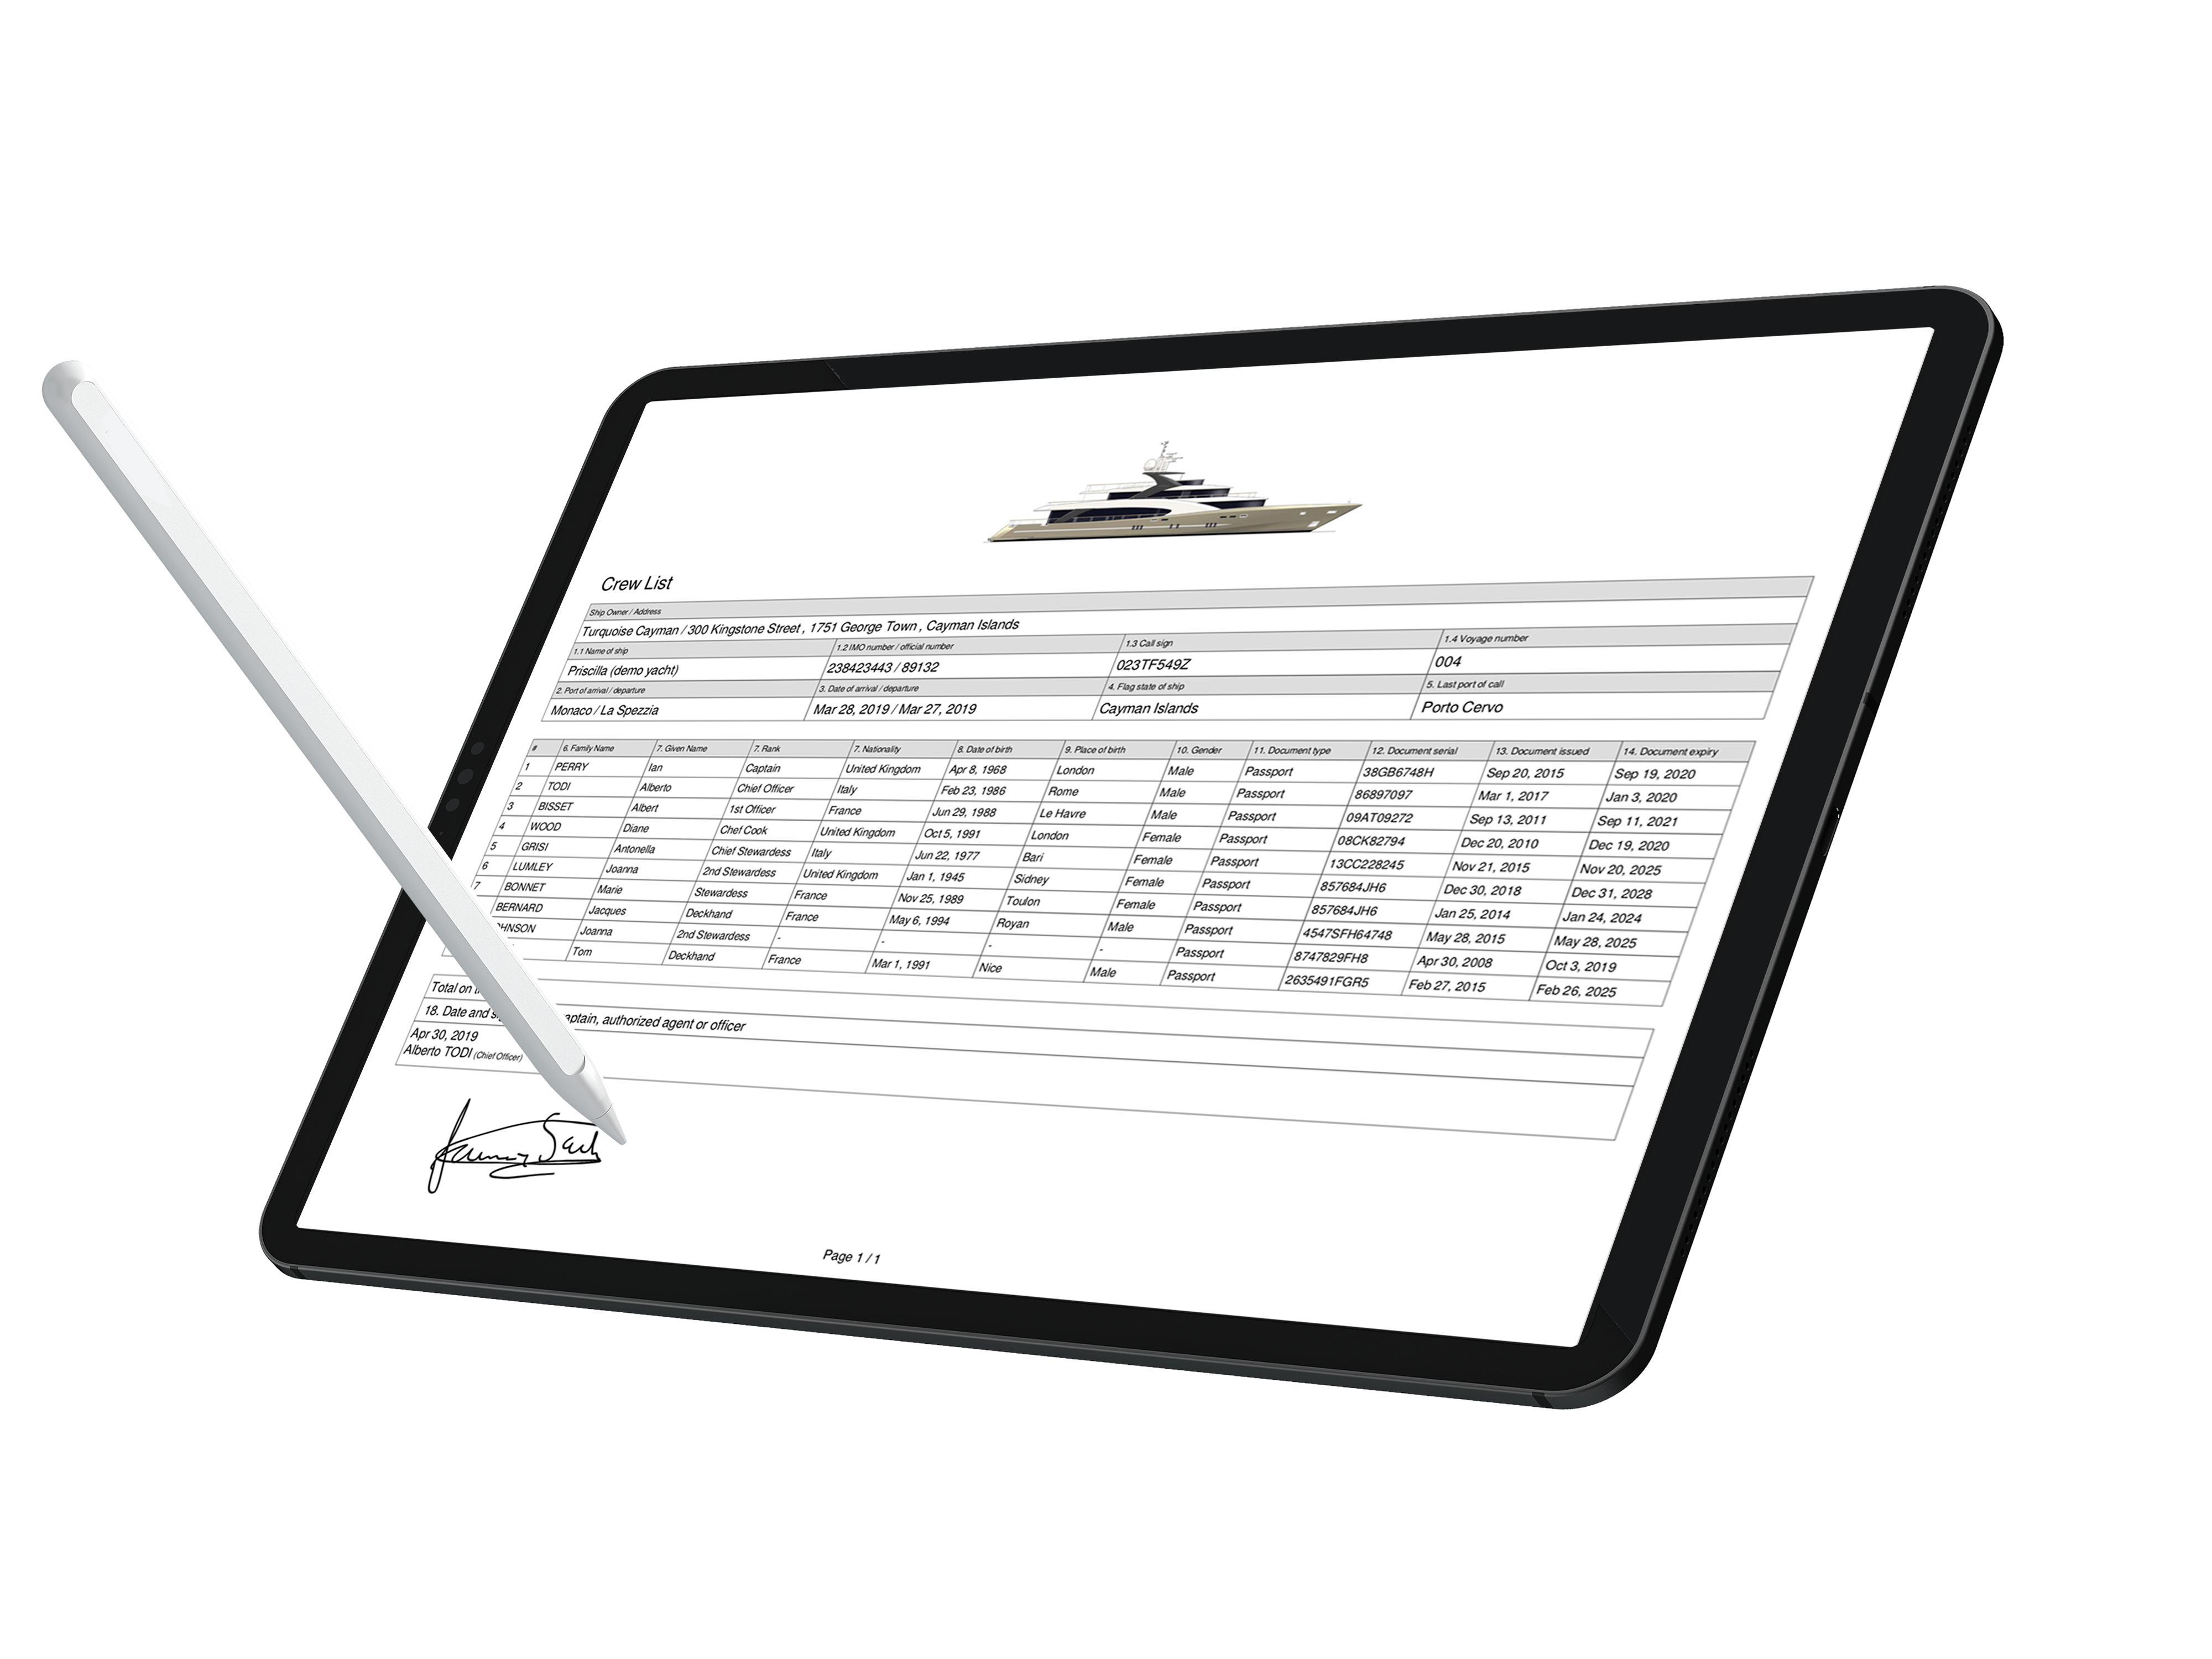 DEEP Blue Soft - A Revolutionary Yacht Management Software